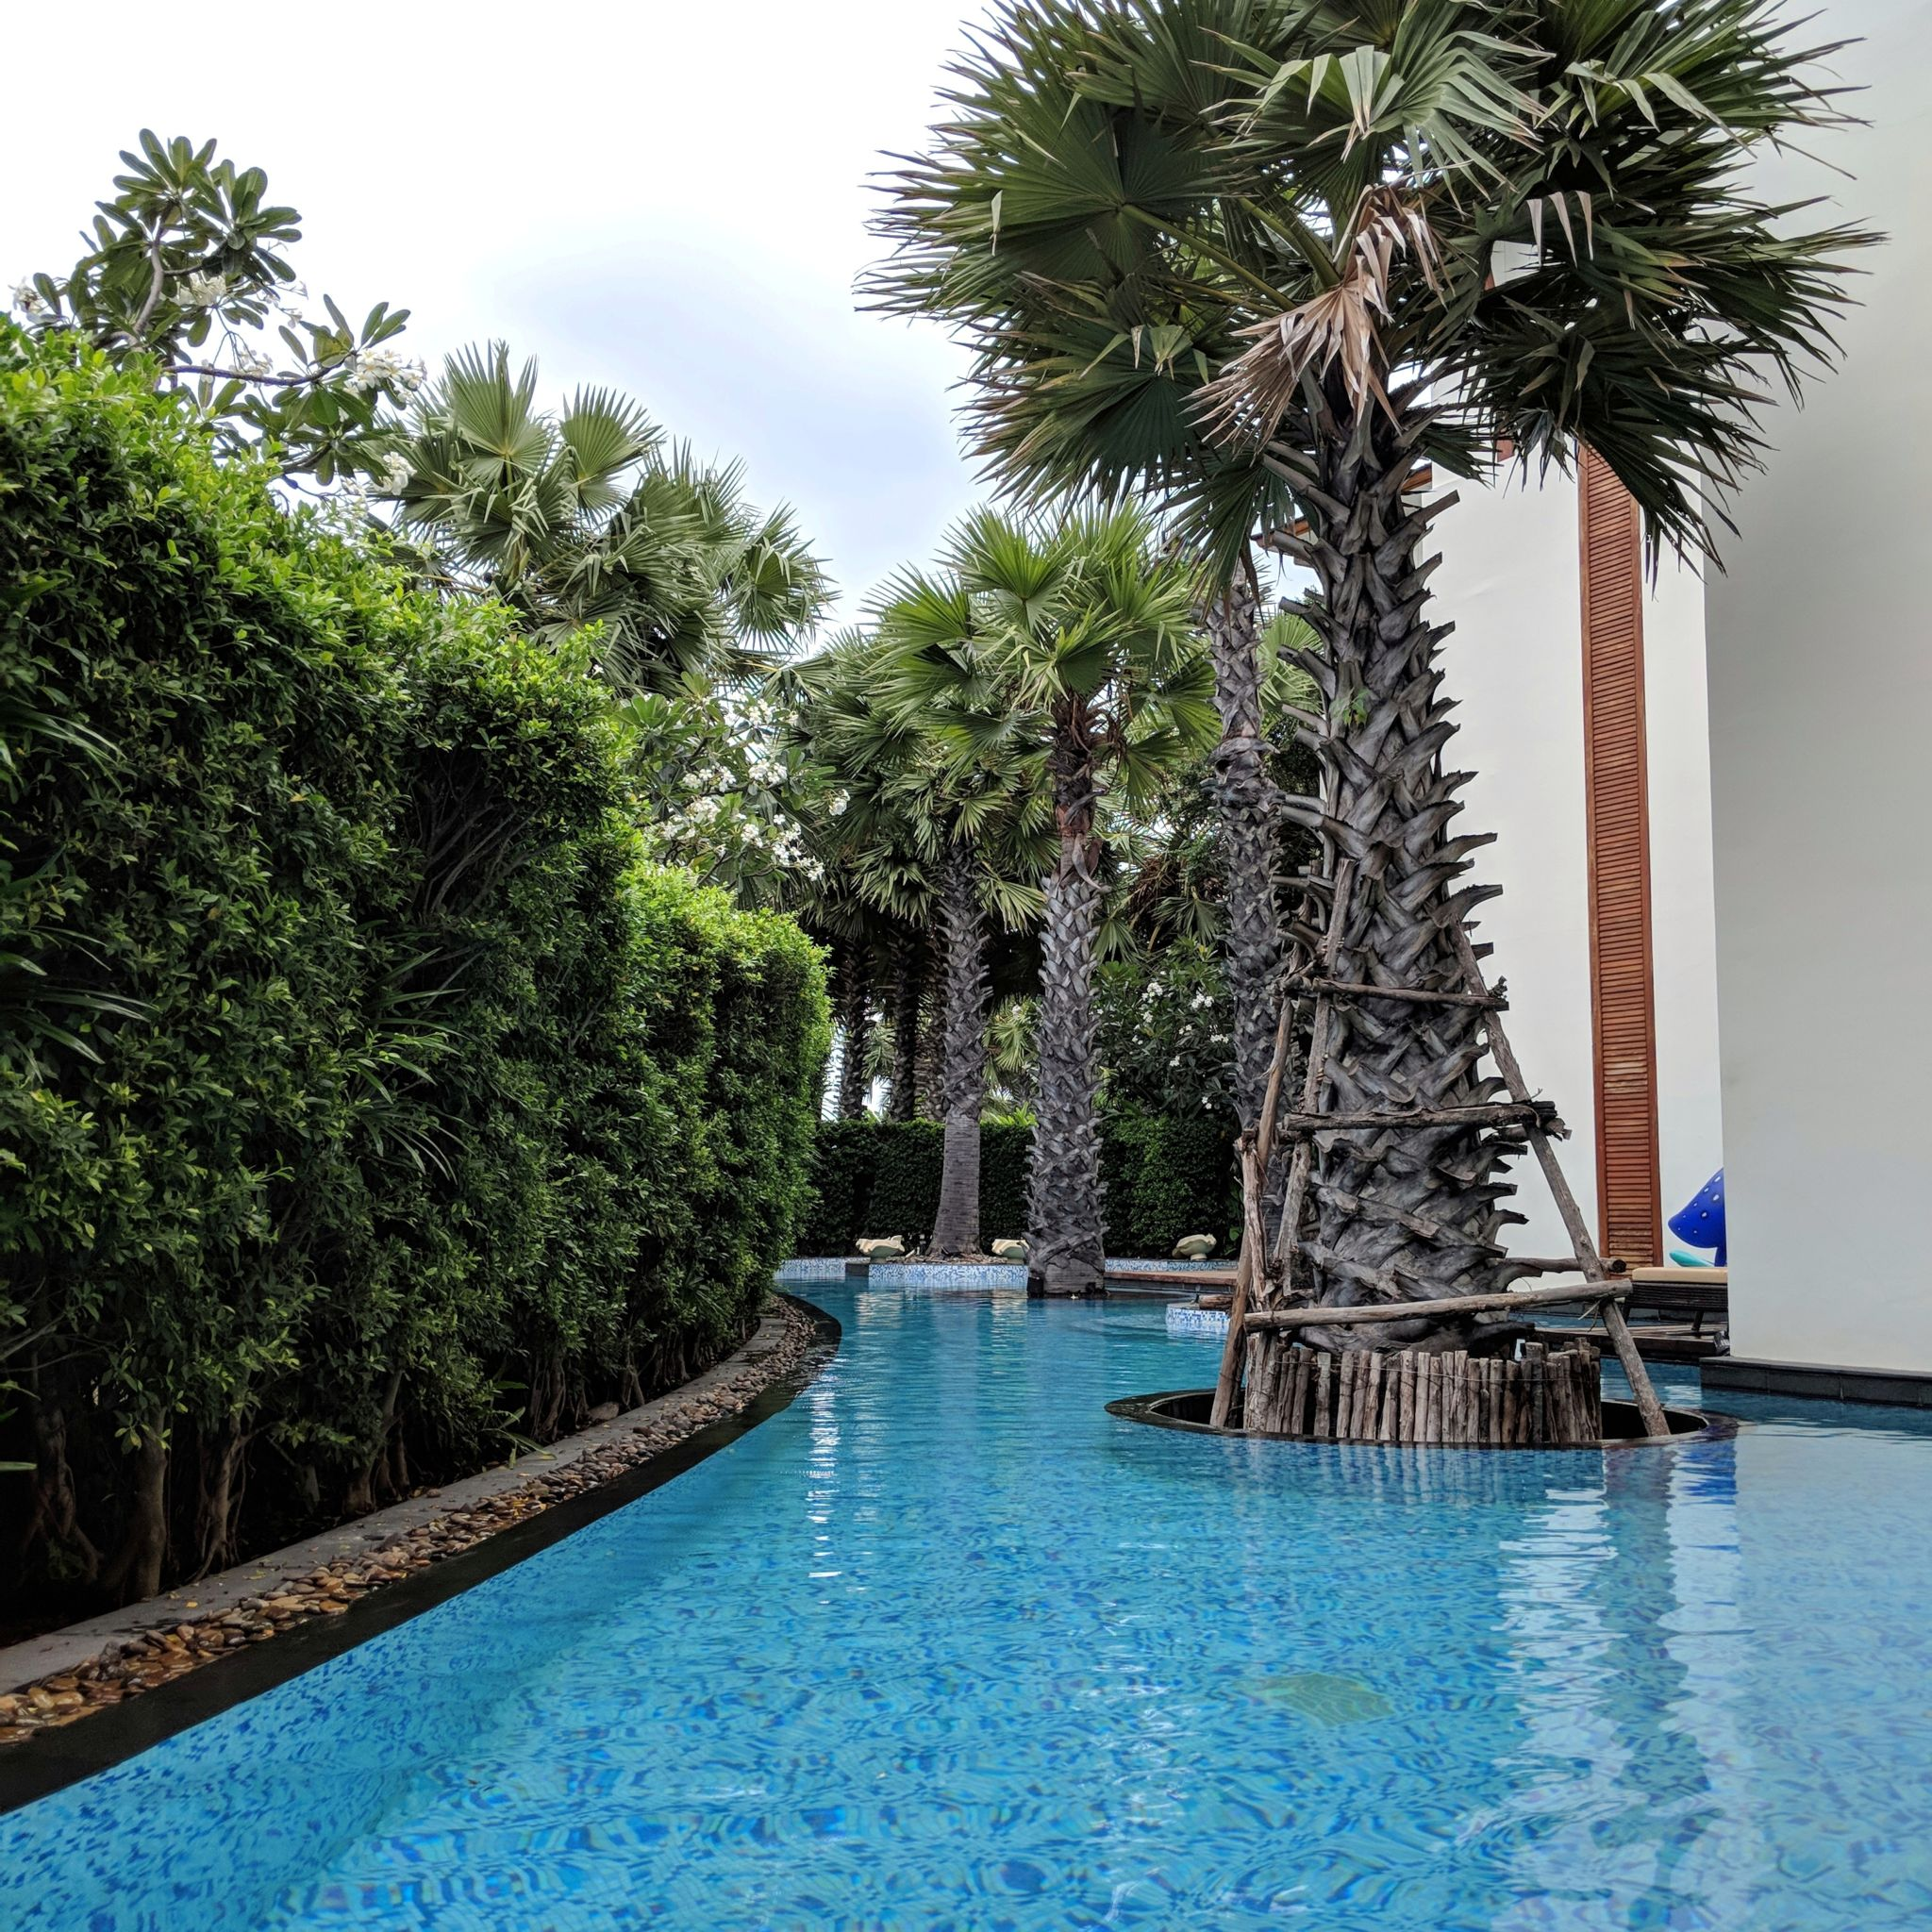 intercontinental hua hin resort club intercontinental pool terrace